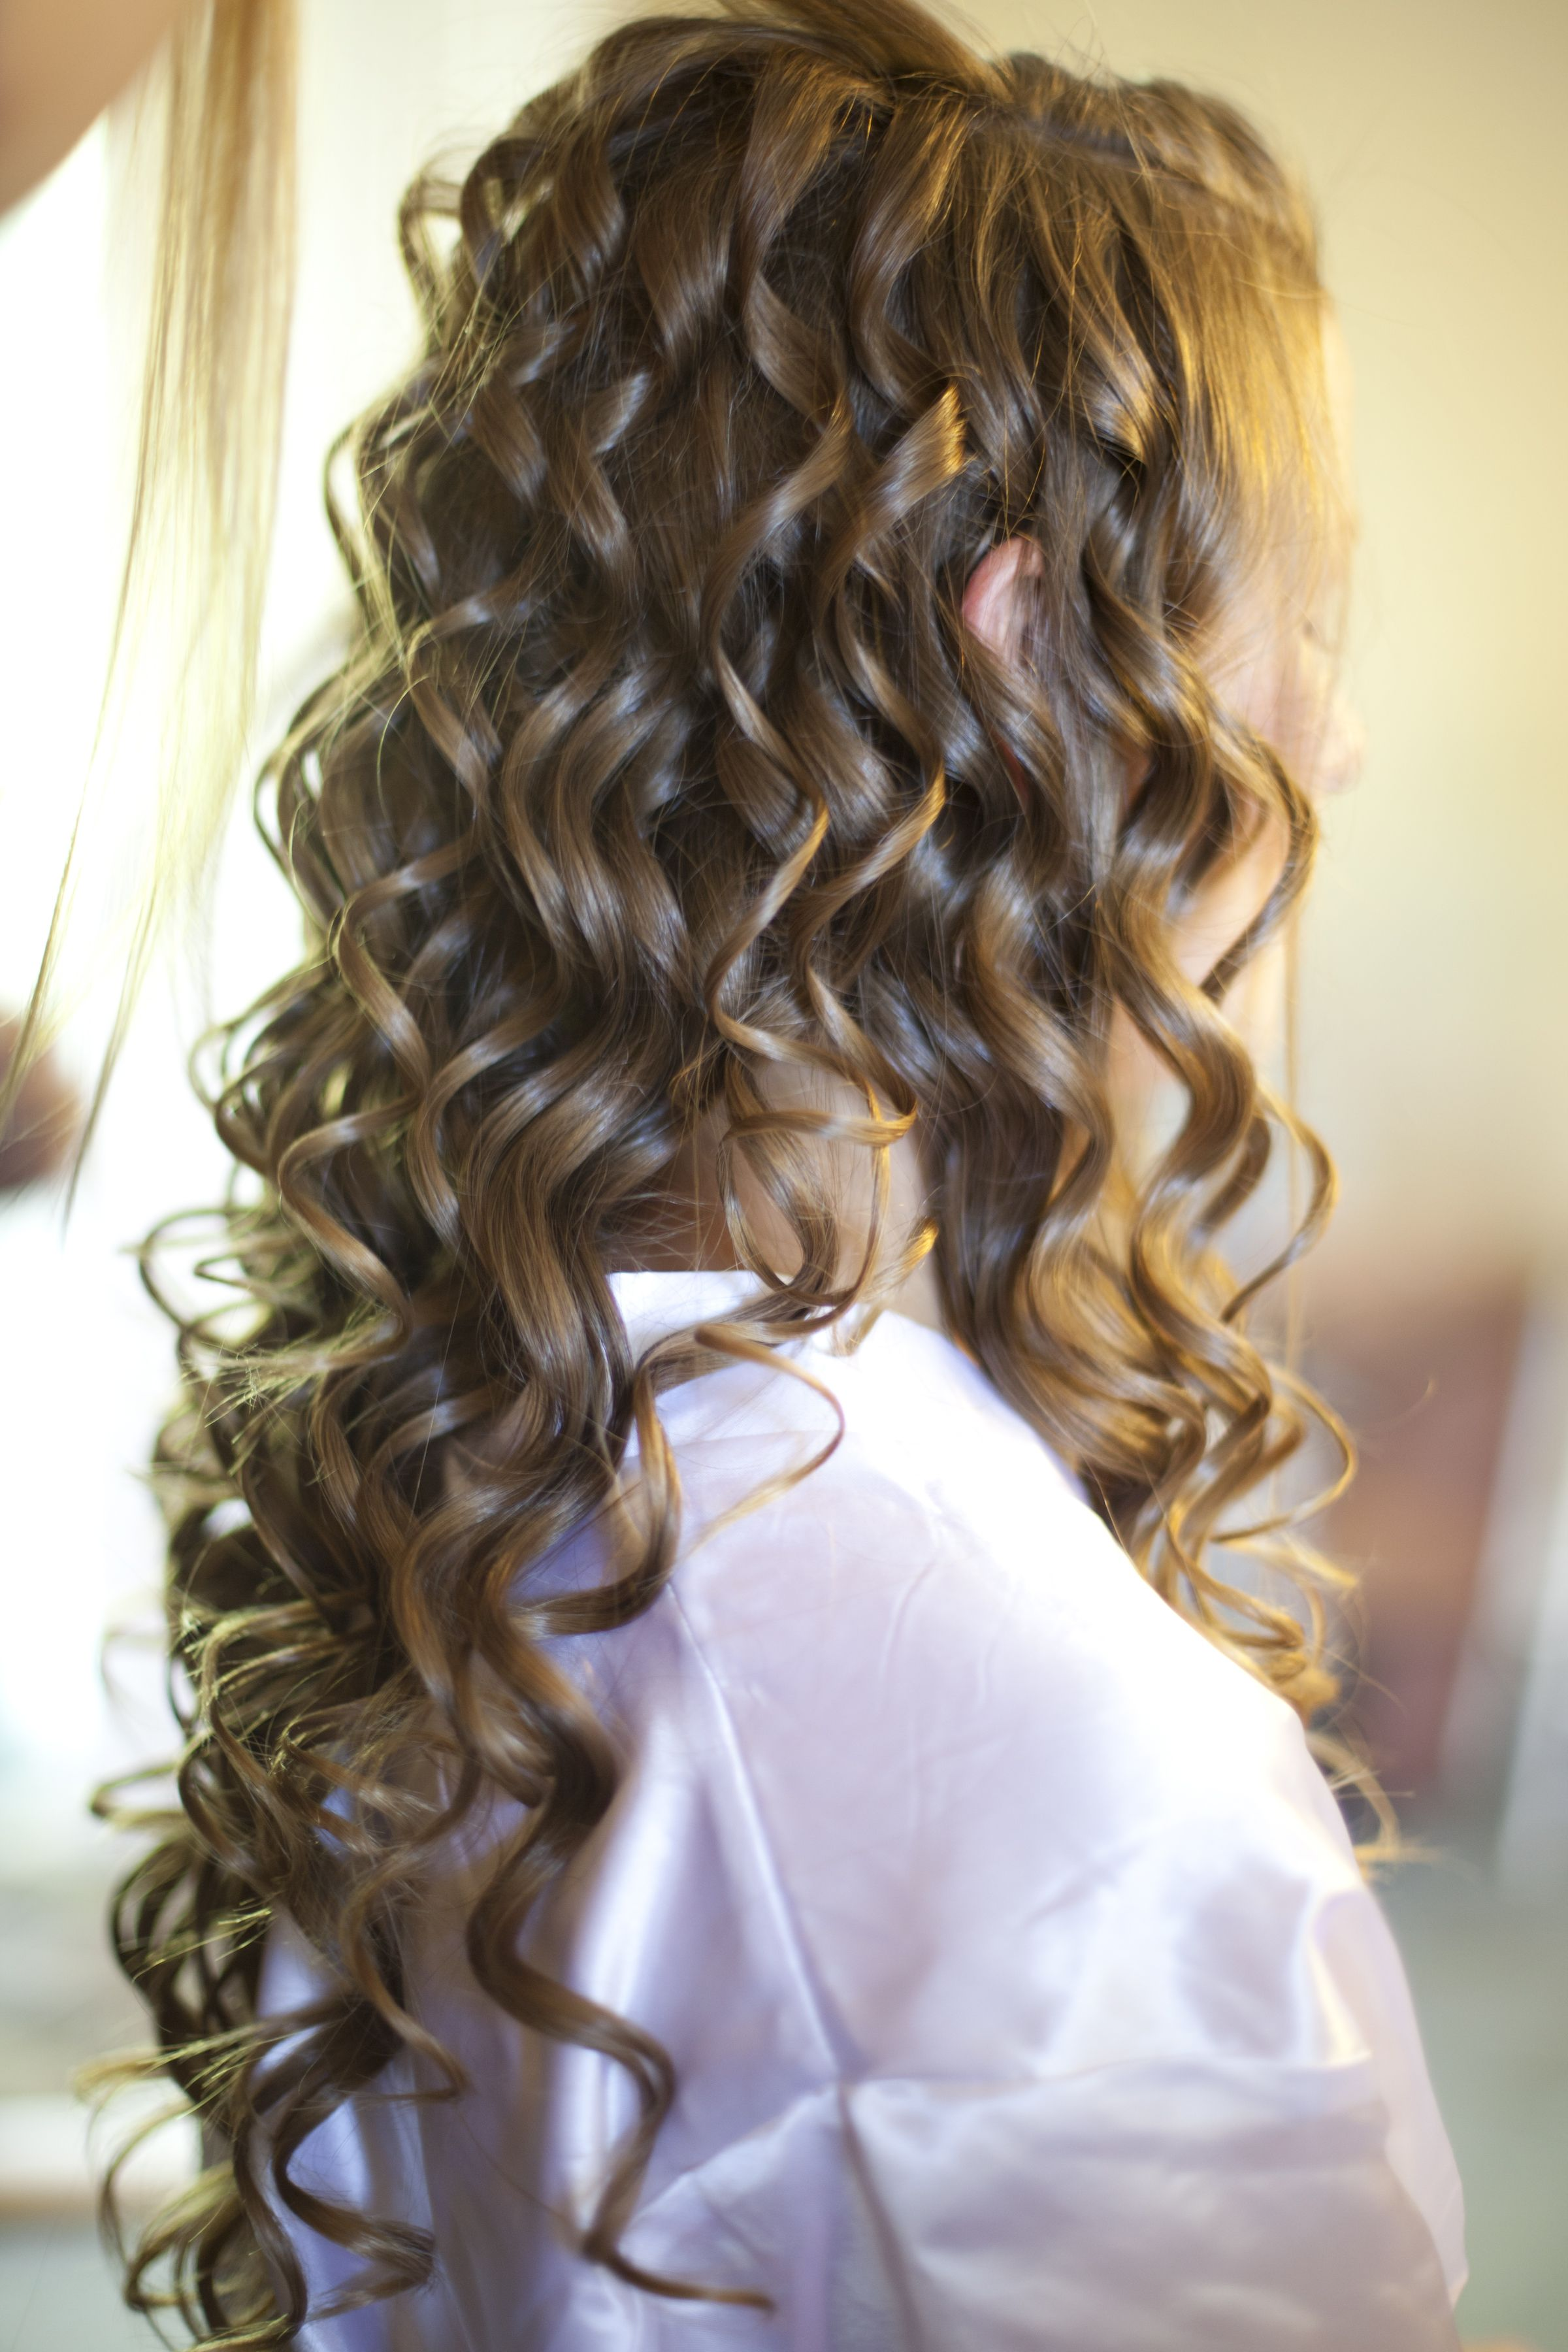 The Wand Curling Iron My Hairstylist Had Worked Magic On My